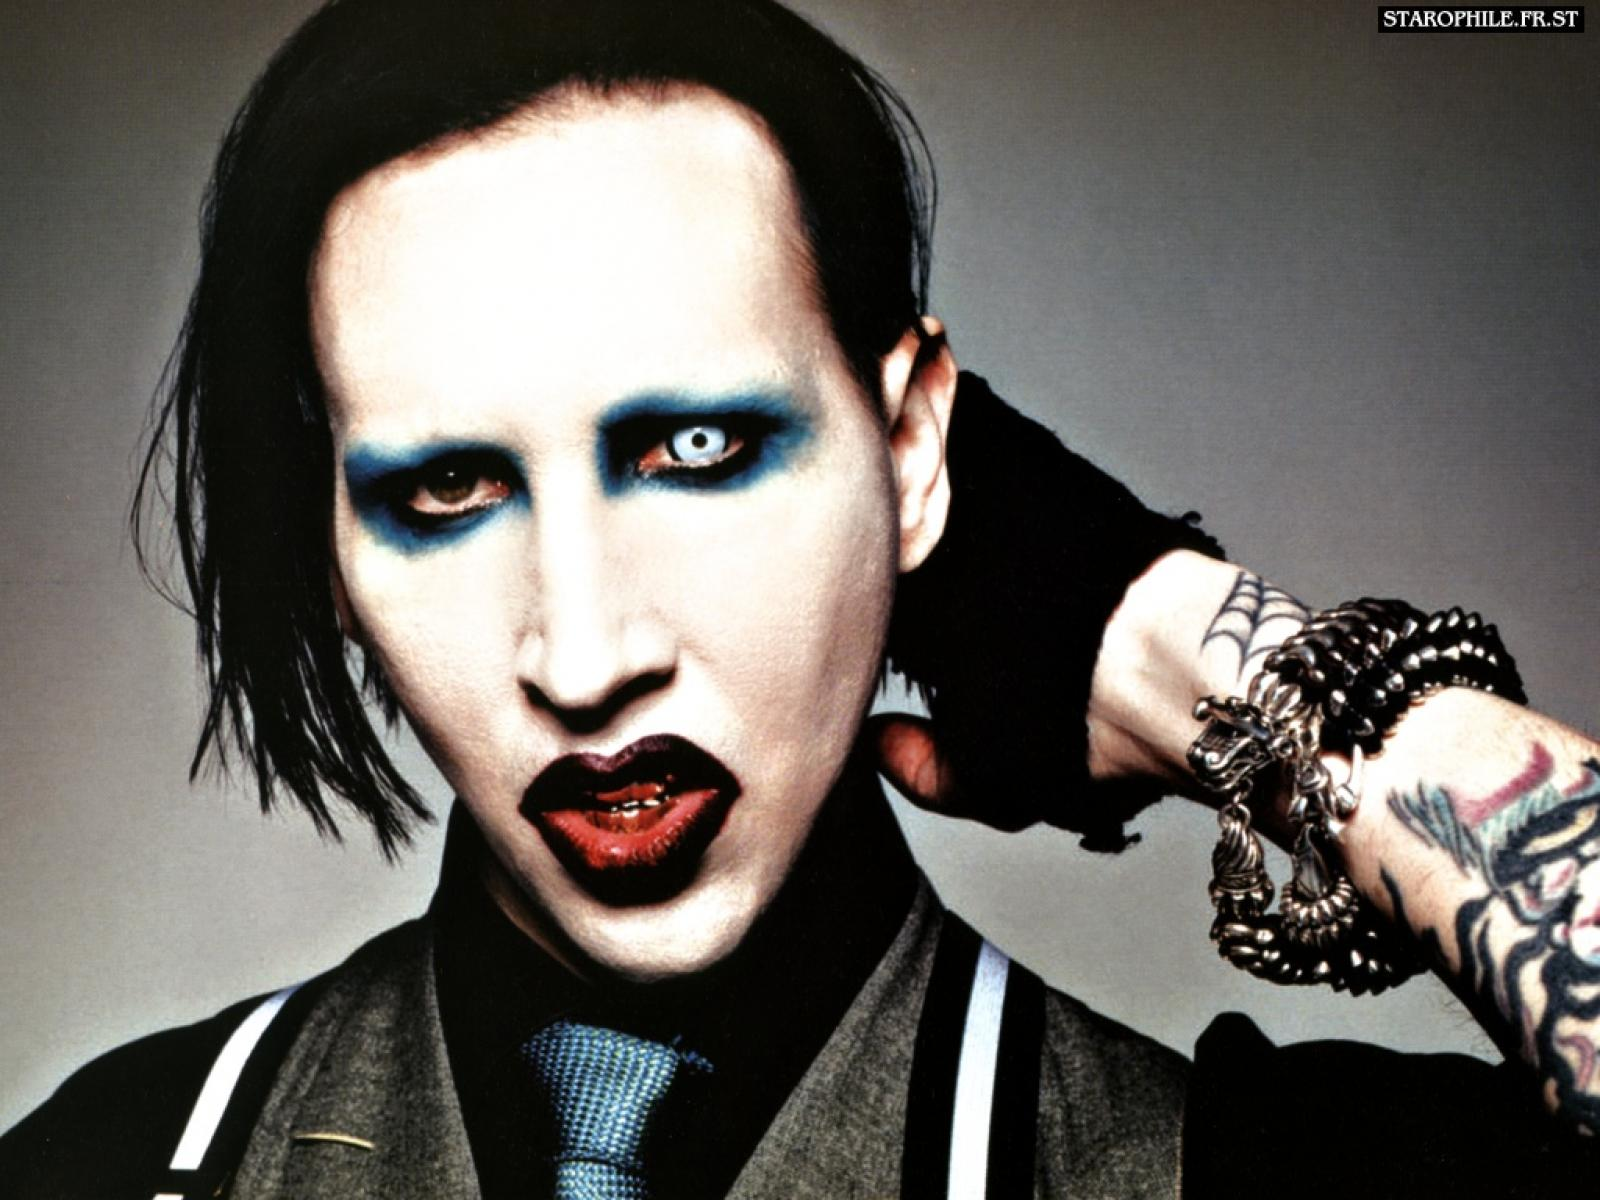 Marilyn manson sweet dreams lyrics